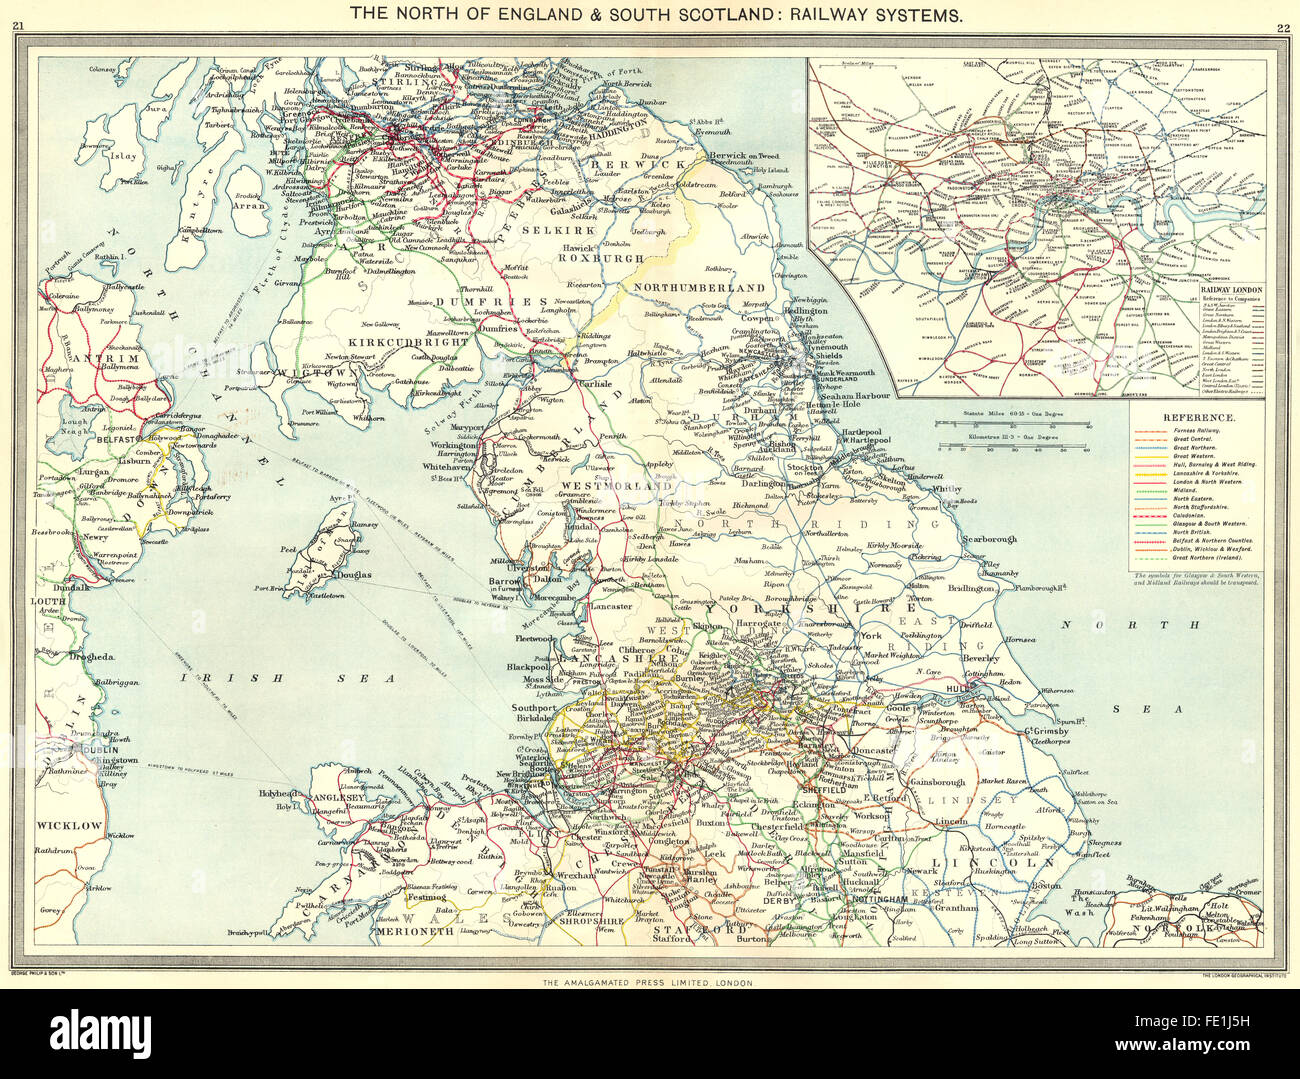 UK North of England south Scotland Railway Systems map London